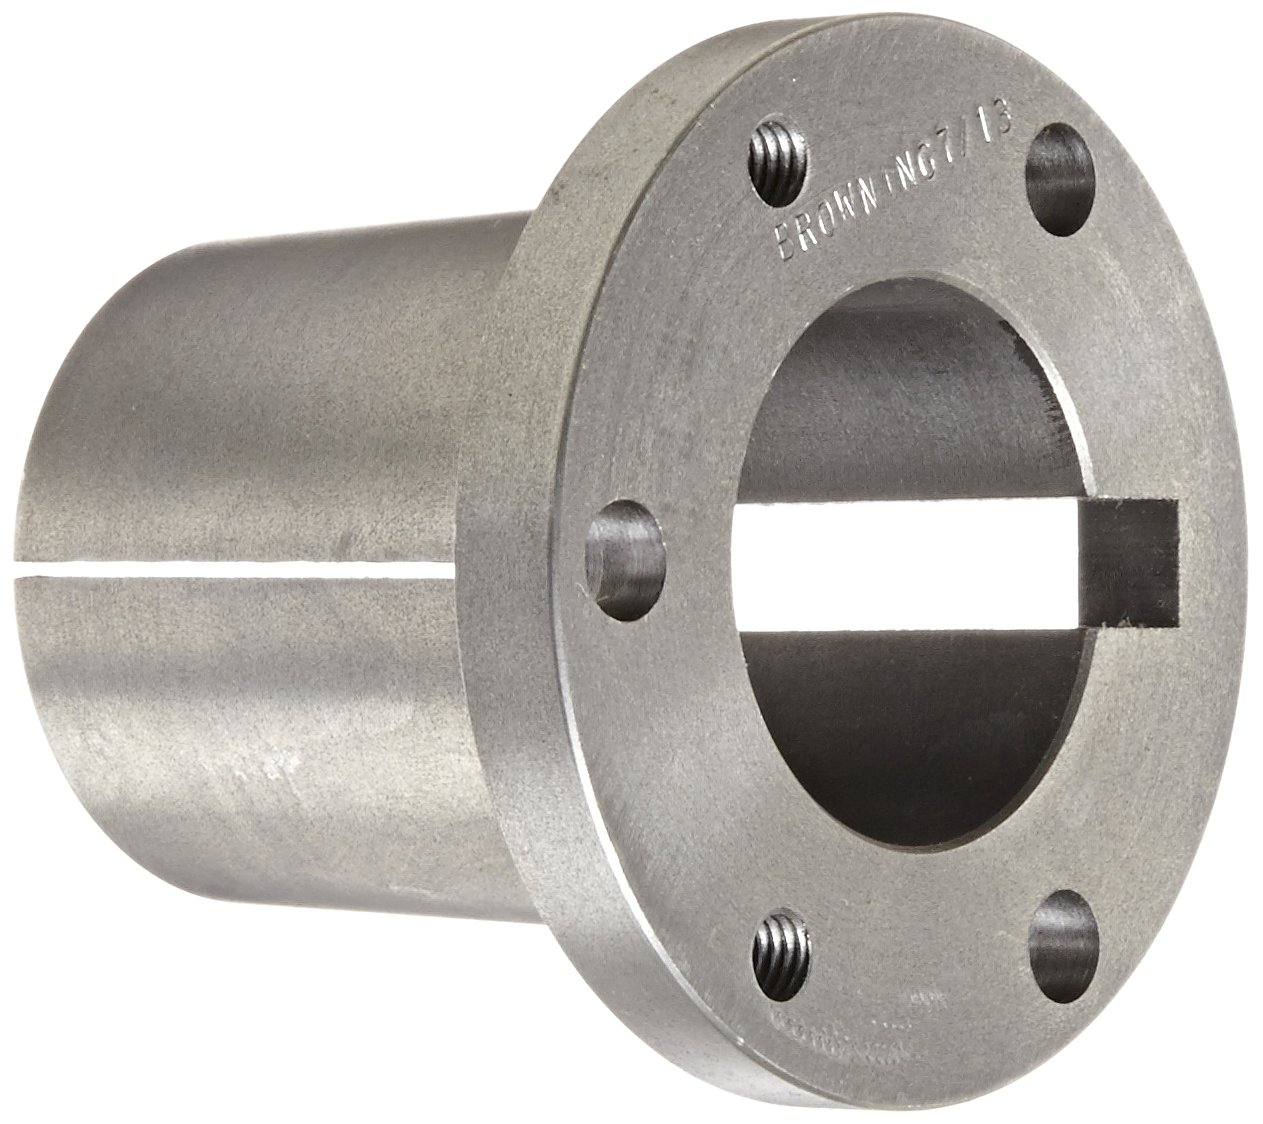 Q2 1 1//2 1.5 Bore Browning Split Taper Bushing